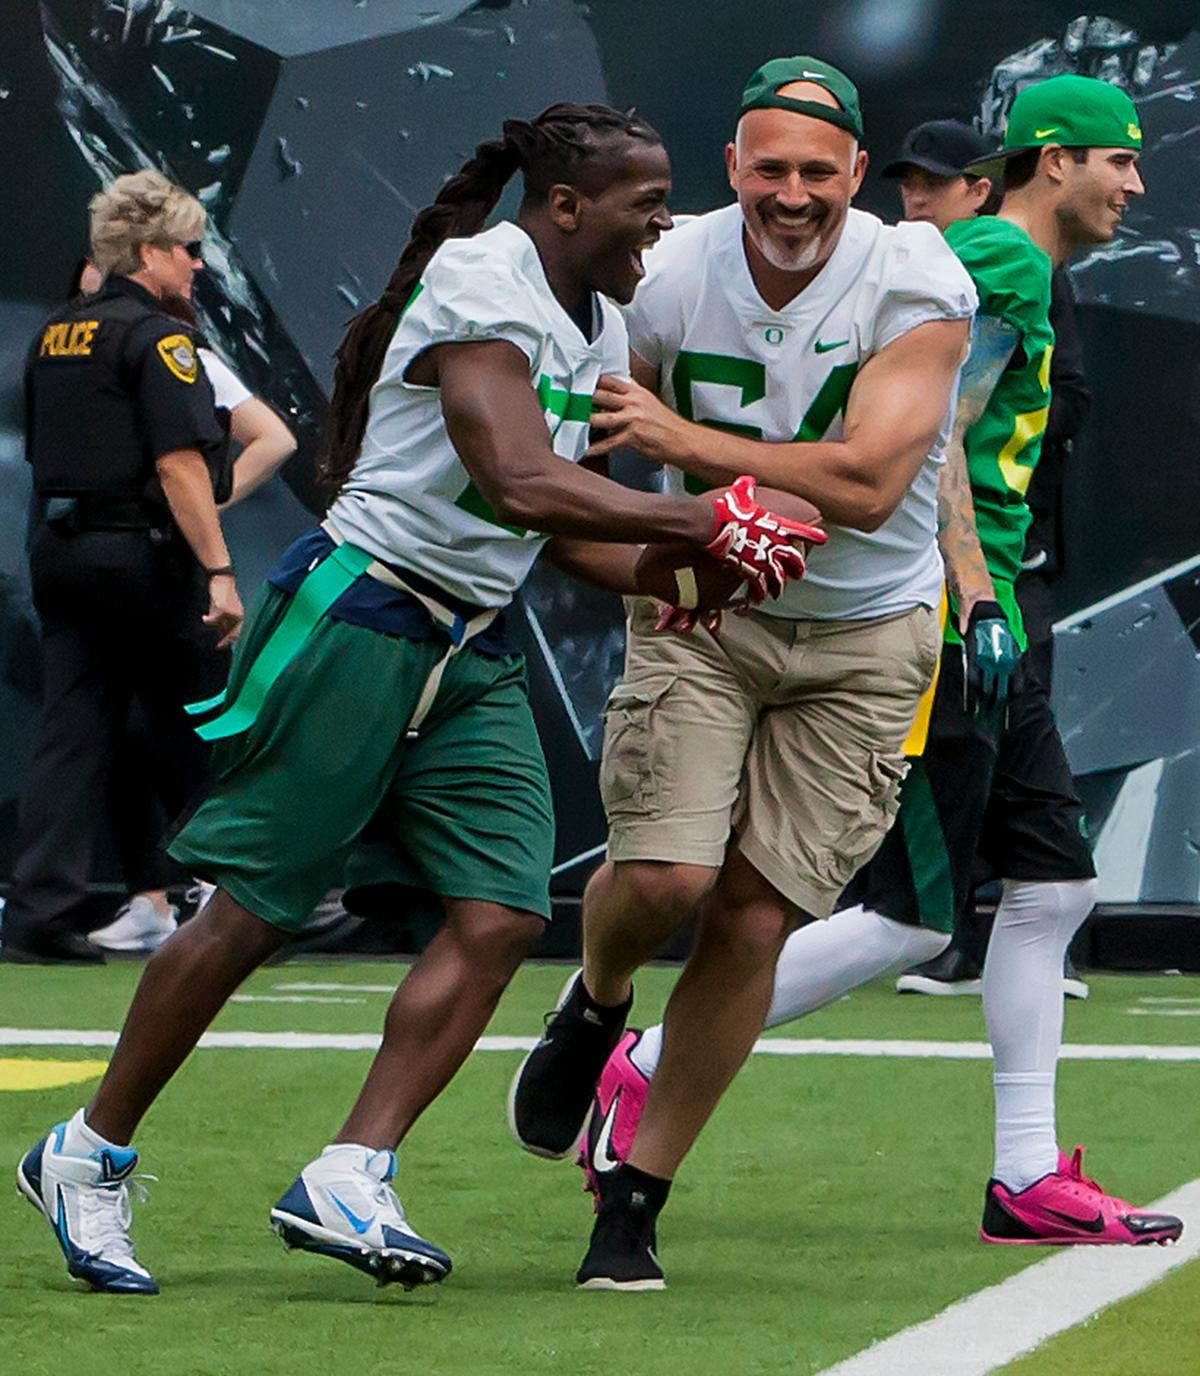 University of Oregon football alumni participate in a flag football game during halftime.The 2017 Oregon Ducks Spring Game provided fans their first glimpse at the team under new Head Coach Willie Taggart's direction. Team Free defeated Team Brave 34-11 on a sunny dat at Autzen Stadium in Eugene, Oregon. Photo by Ben Lonergan, Oregon News Lab